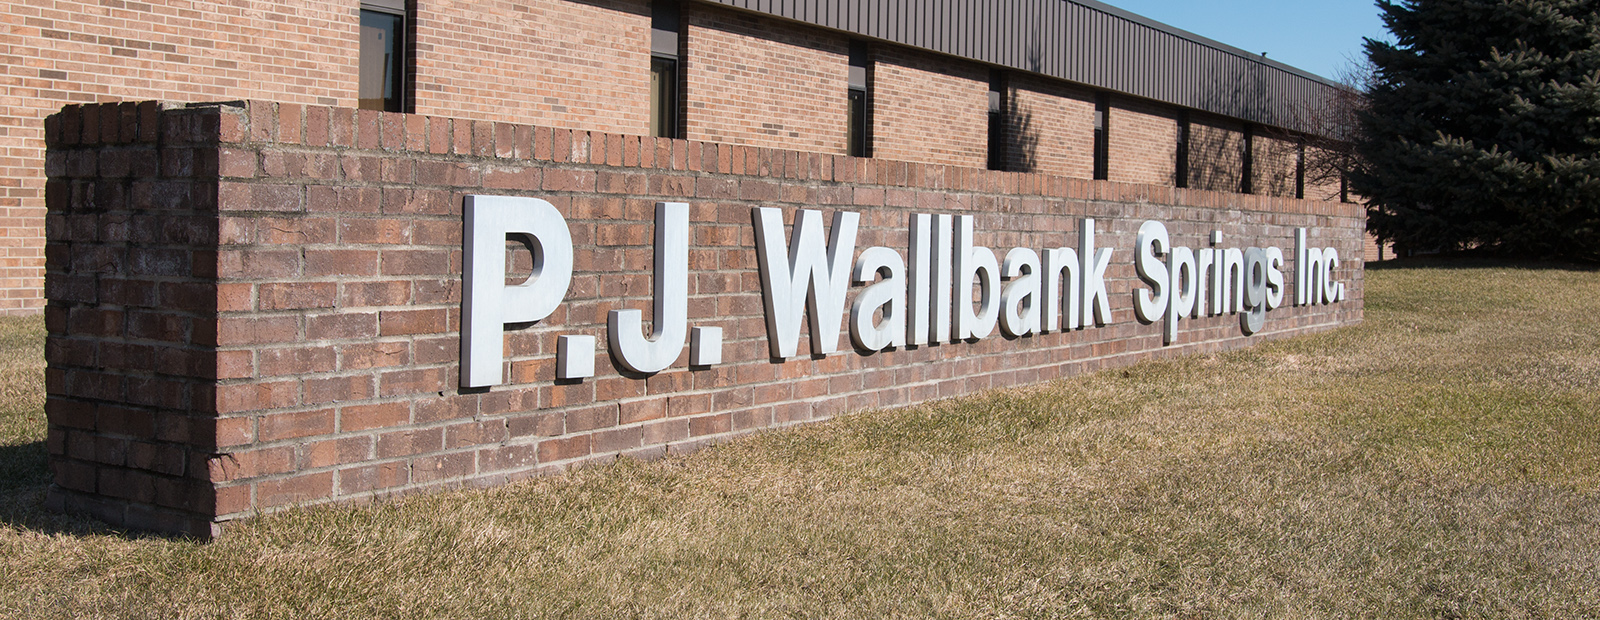 P.J. Wallbank Springs is planning to double in size.